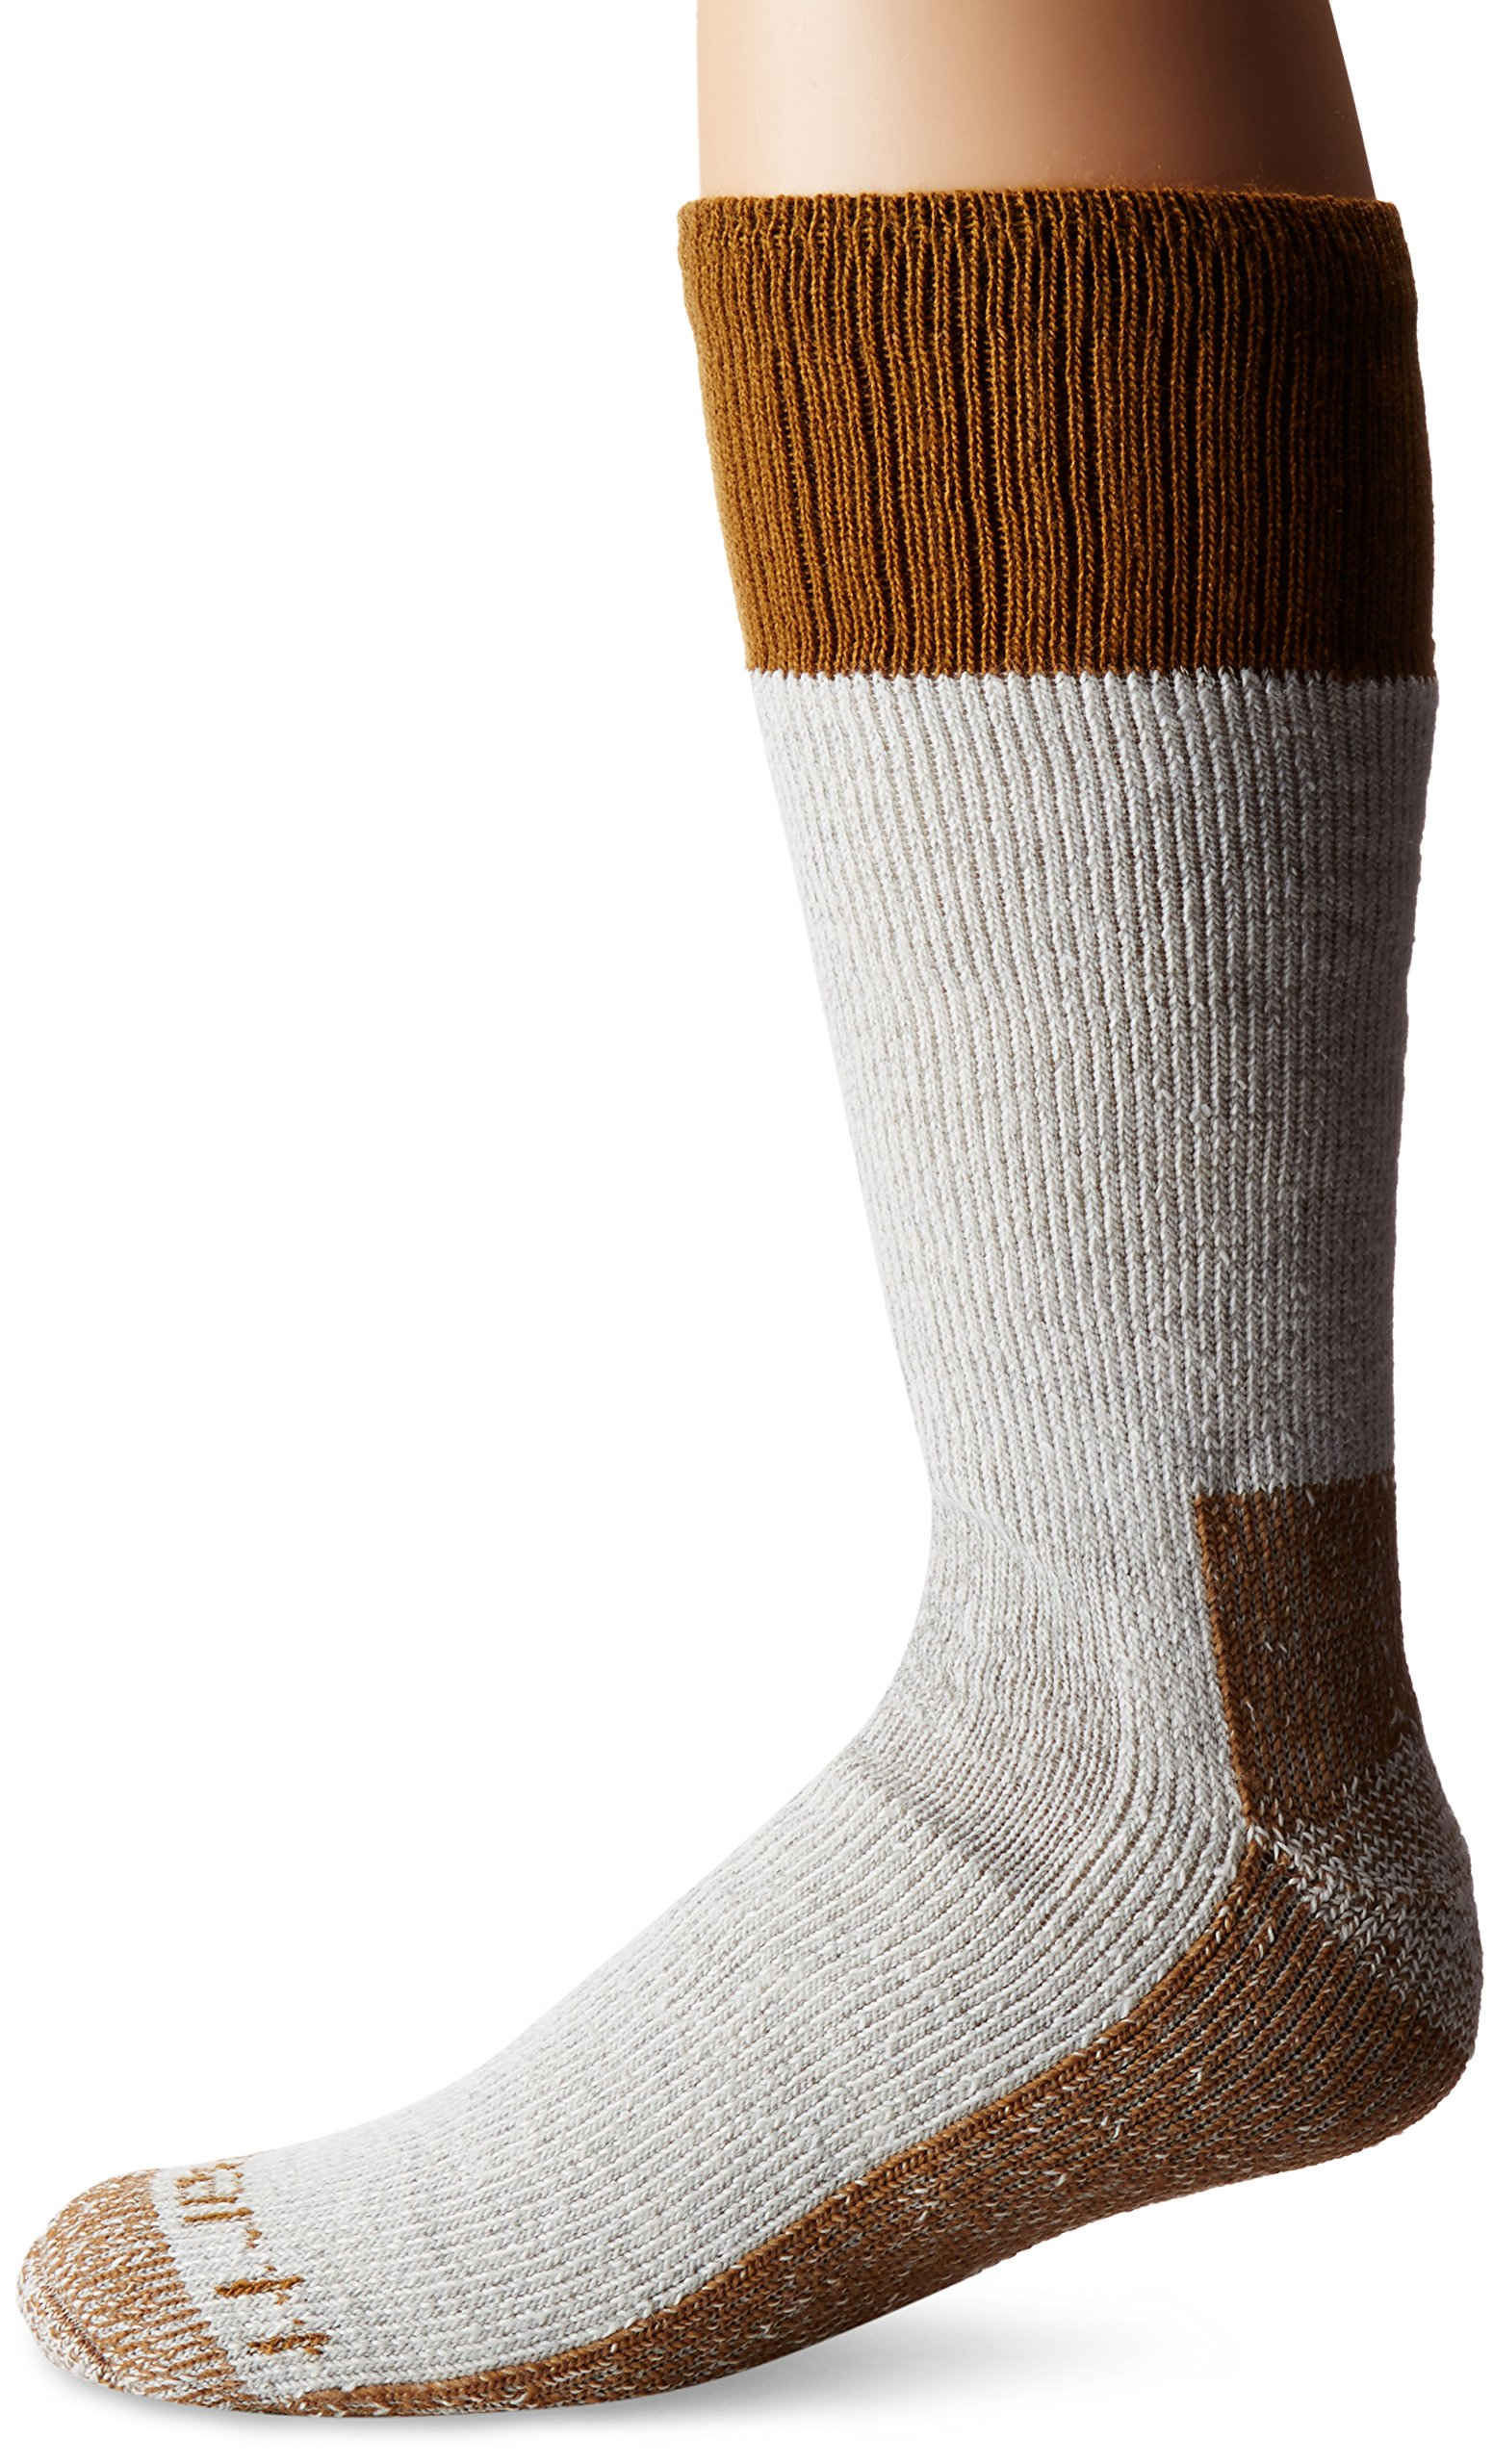 Carhartt Extremes Weather Socks Brown